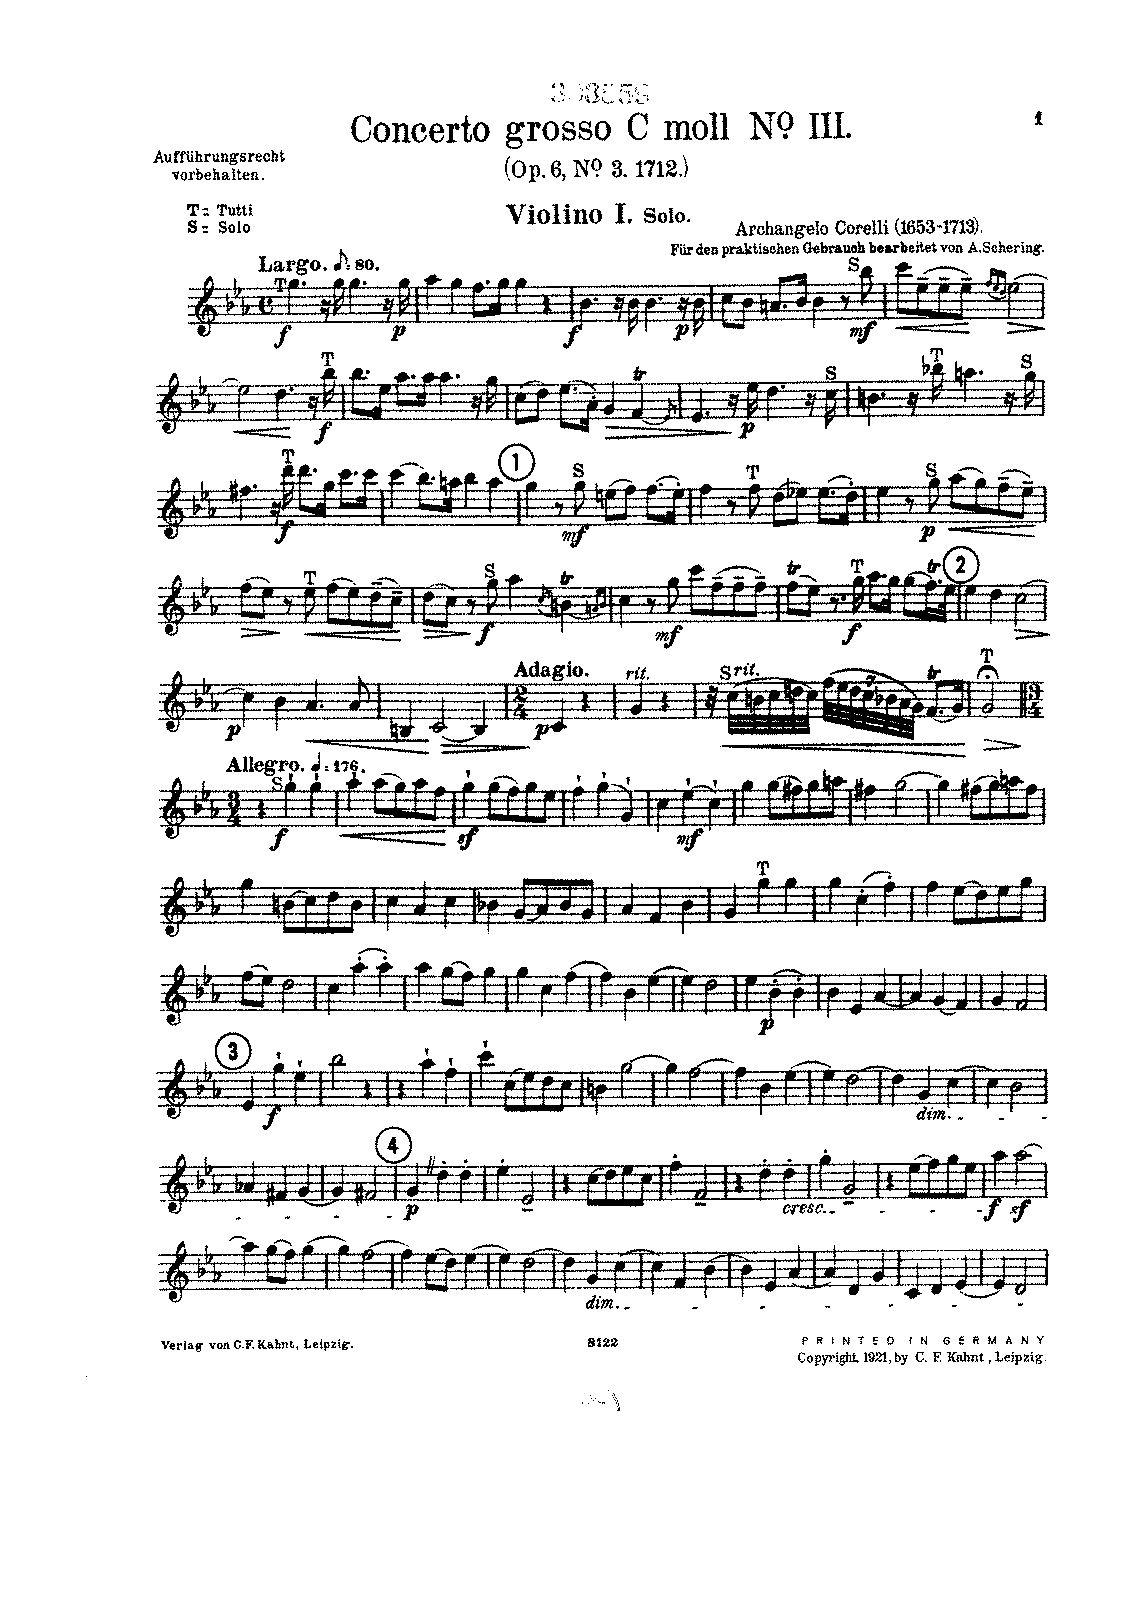 PMLP28008-Corelli - Concerto grosso No3 in CM for 2 Solo-Violins, Solo-Cello, Strings and Piano (Schering) violin1 solo.pdf